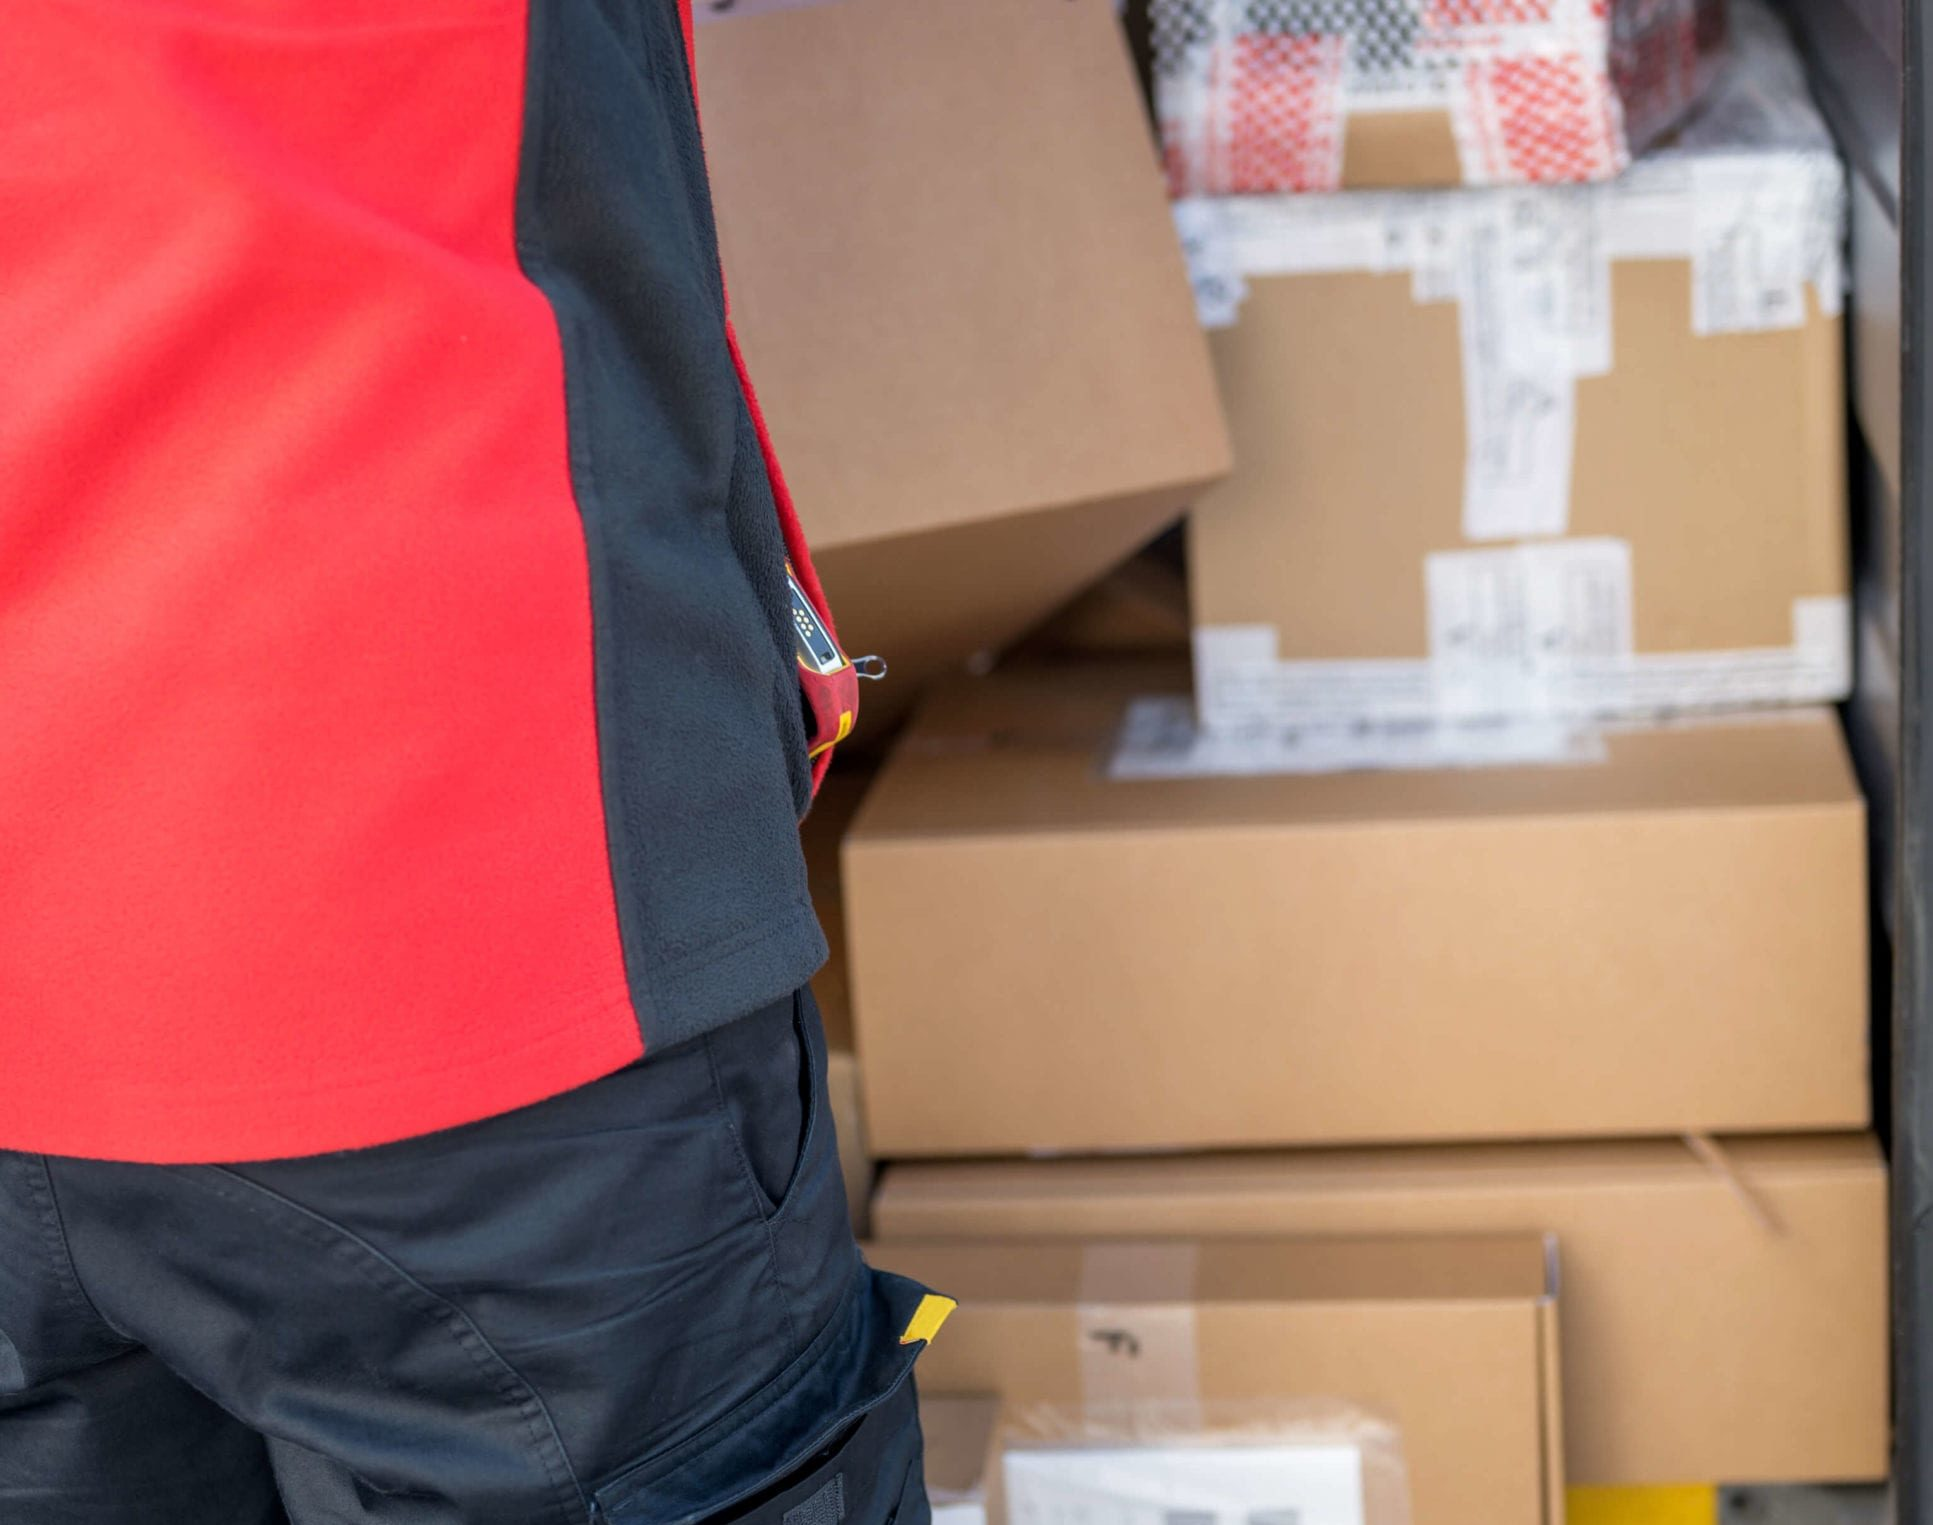 Optimizing Retail Order Management Requires Data-Driven Insights